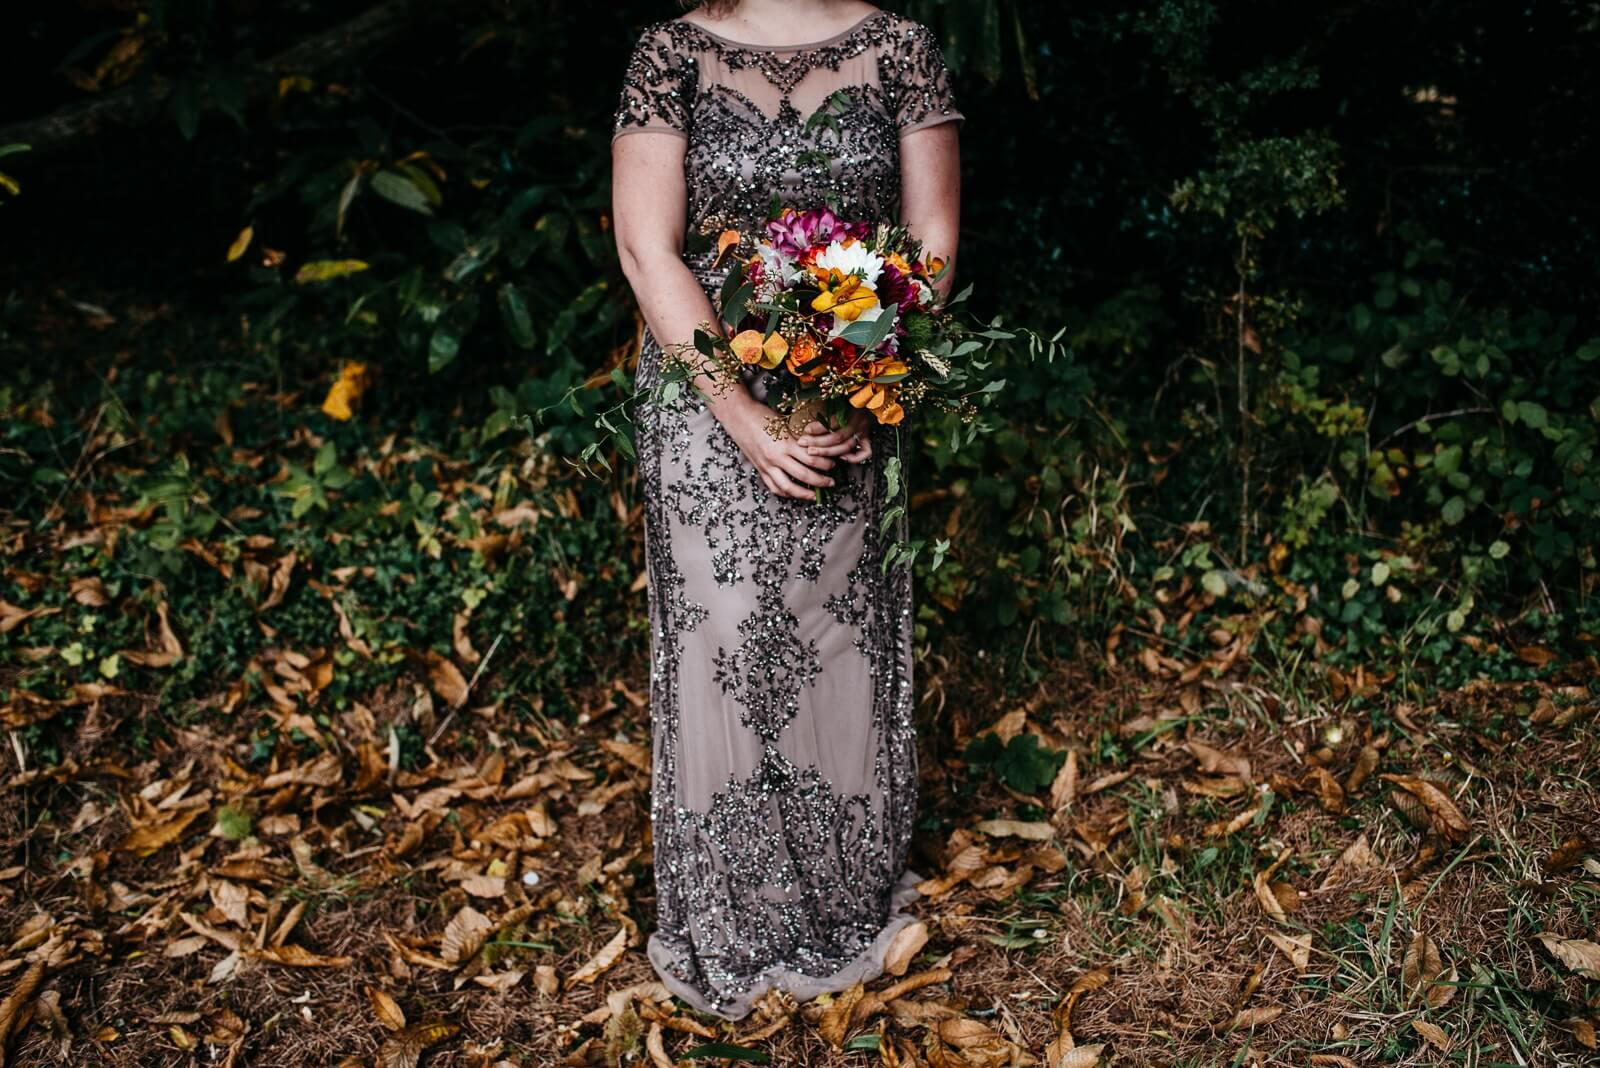 Alternative bride details featuring mink sequinned dress and rustic autumn bouquet of yellow, orange, and hot pink flowers standing in bed of autumn leaves at Cardiff wedding